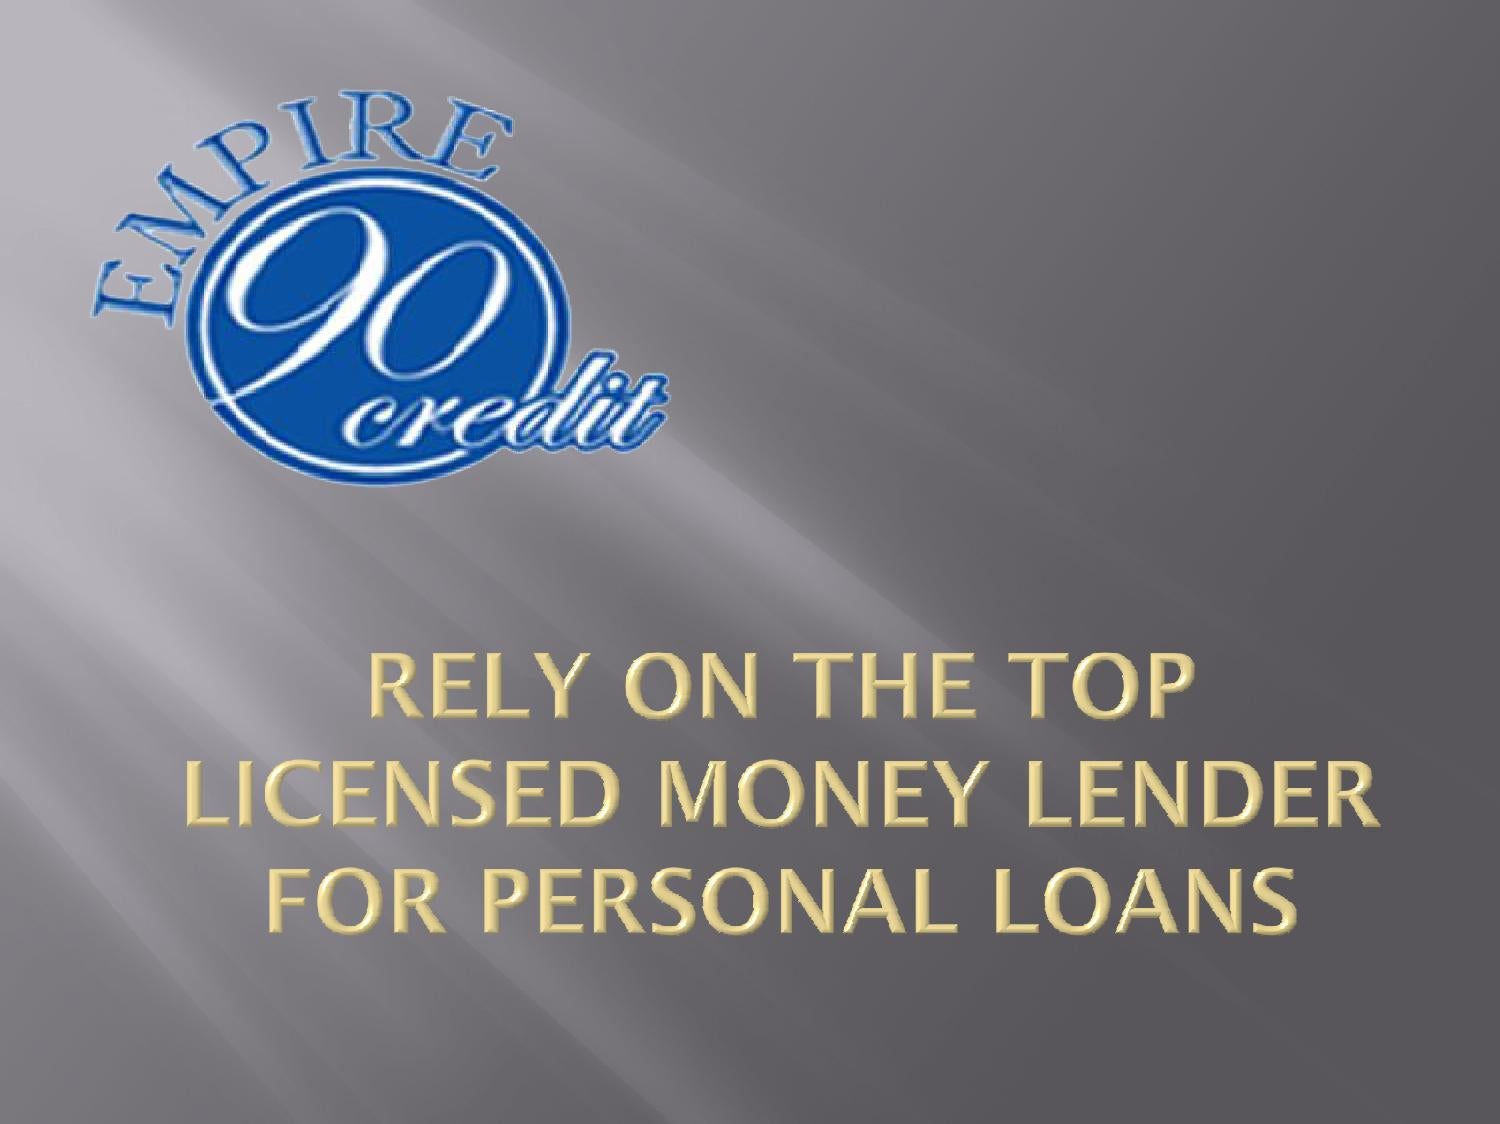 Money Personal Loans : Rely on the top licensed money lender for personal loans